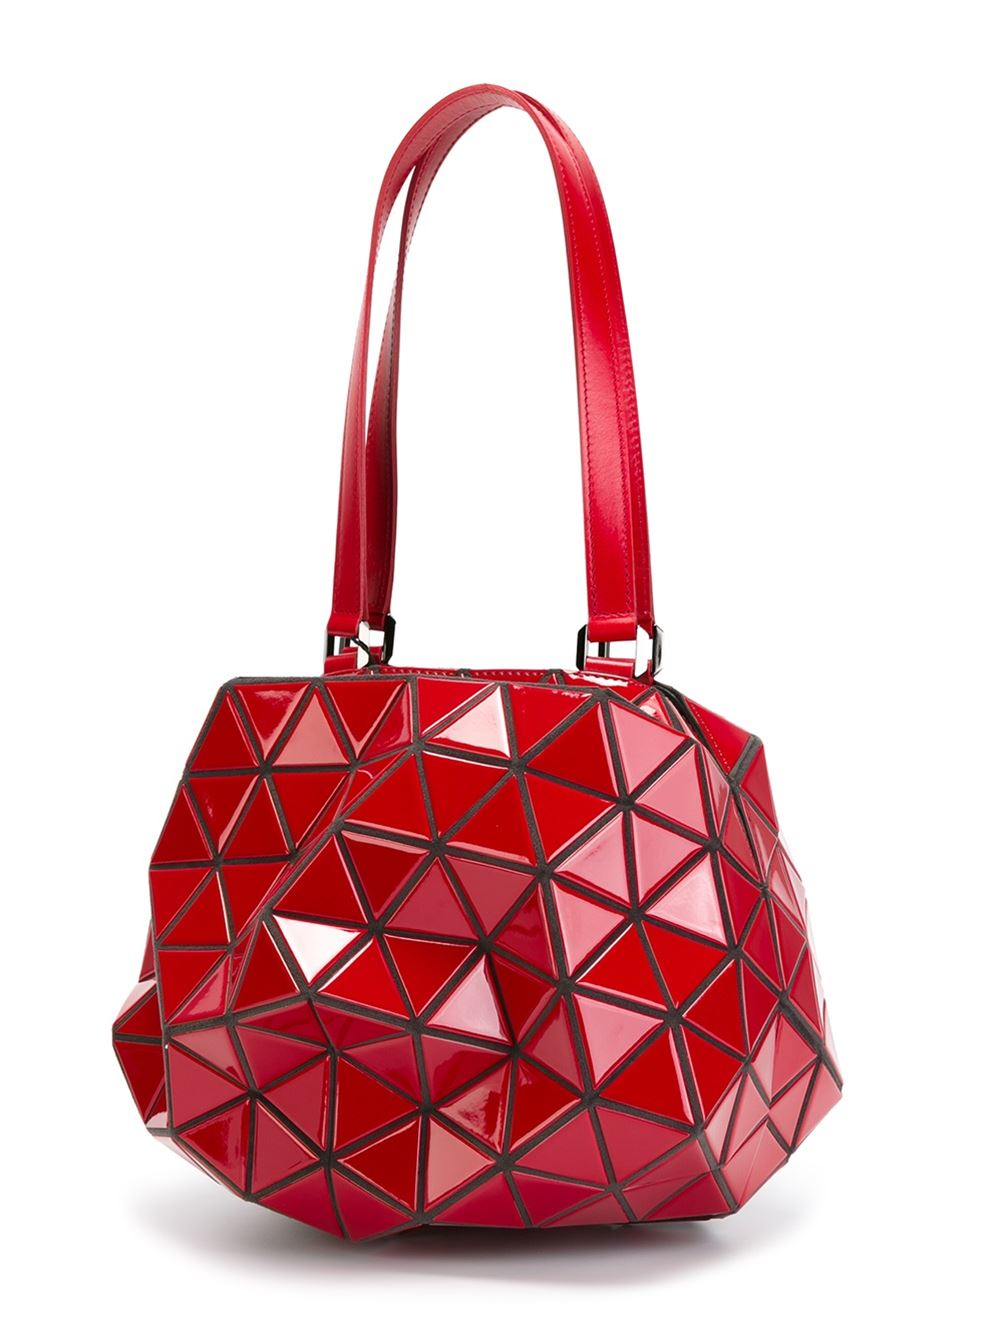 Lyst Bao Bao Issey Miyake Planet Shoulder Bag In Red